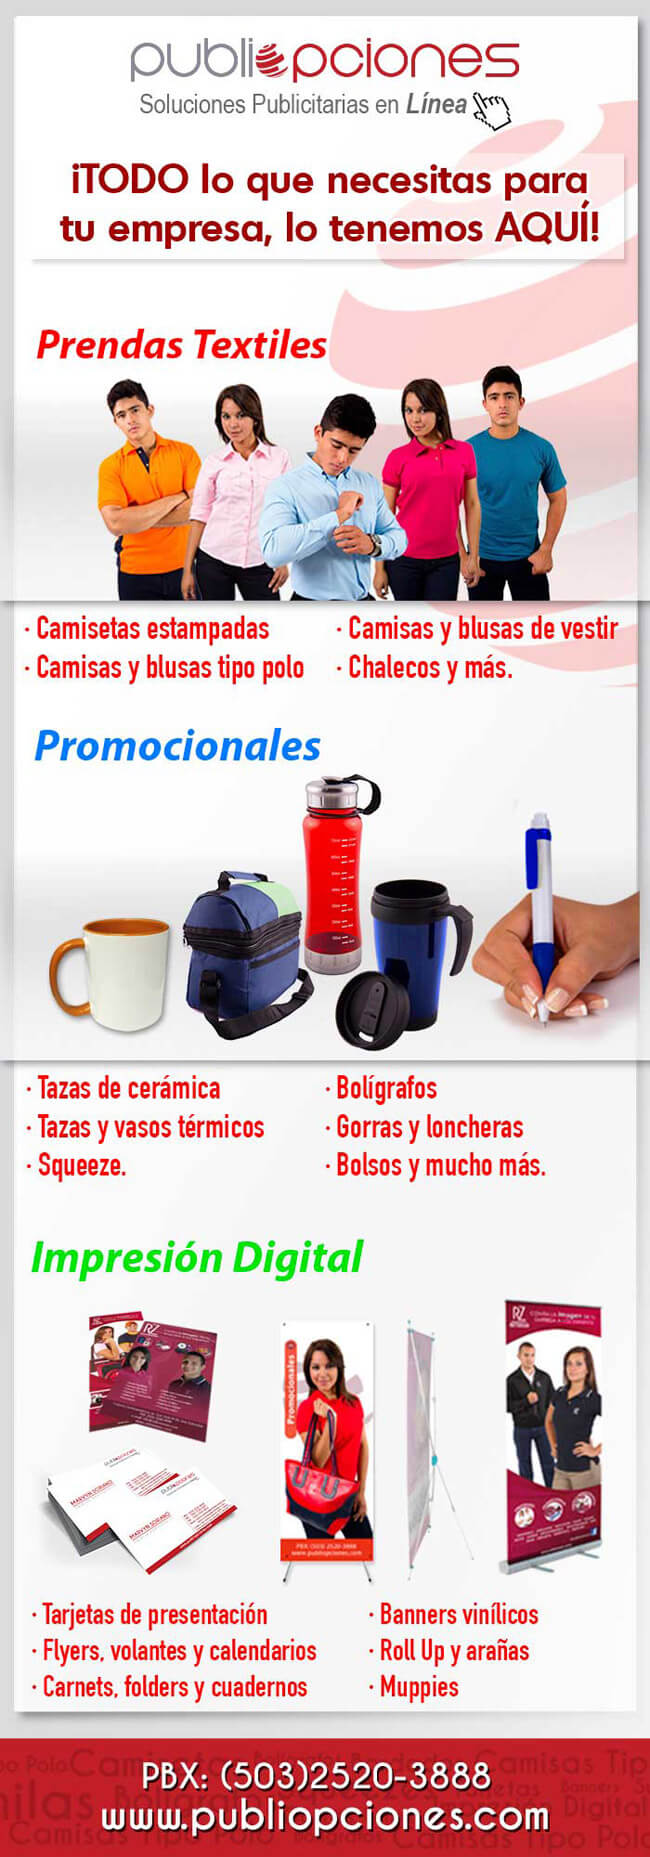 email-marketing_publiopciones